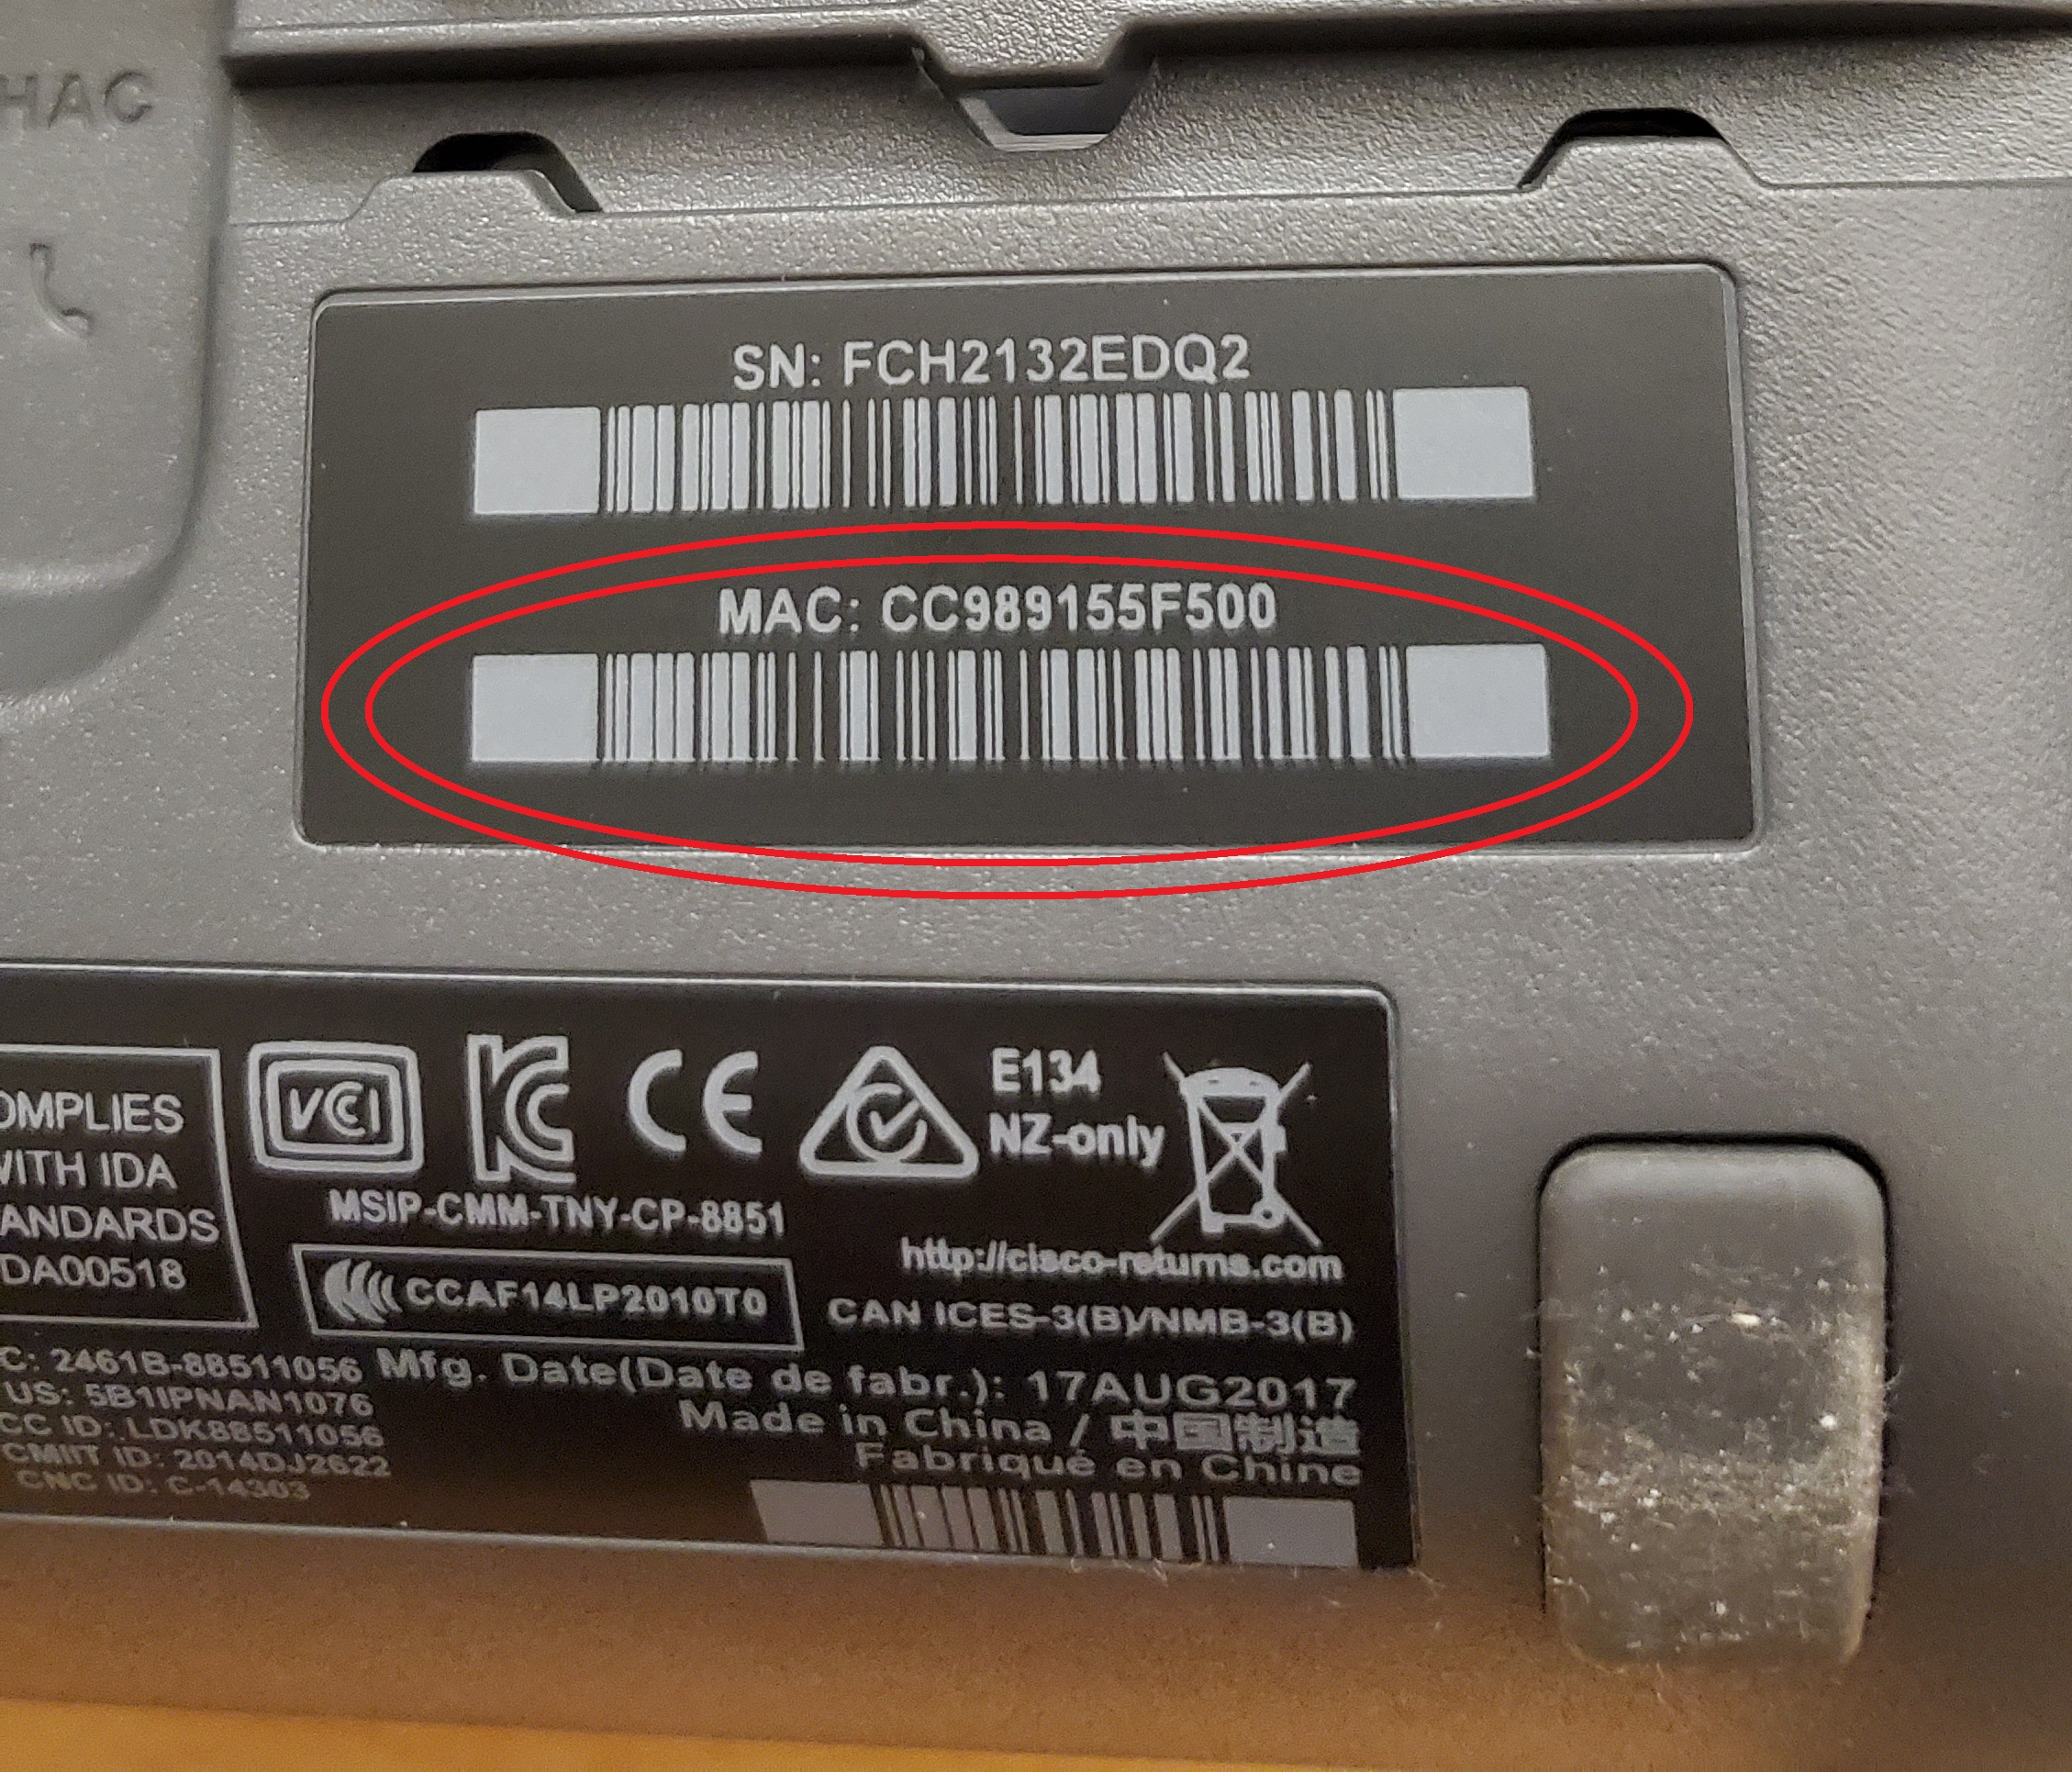 circled mac address on the back of the phone